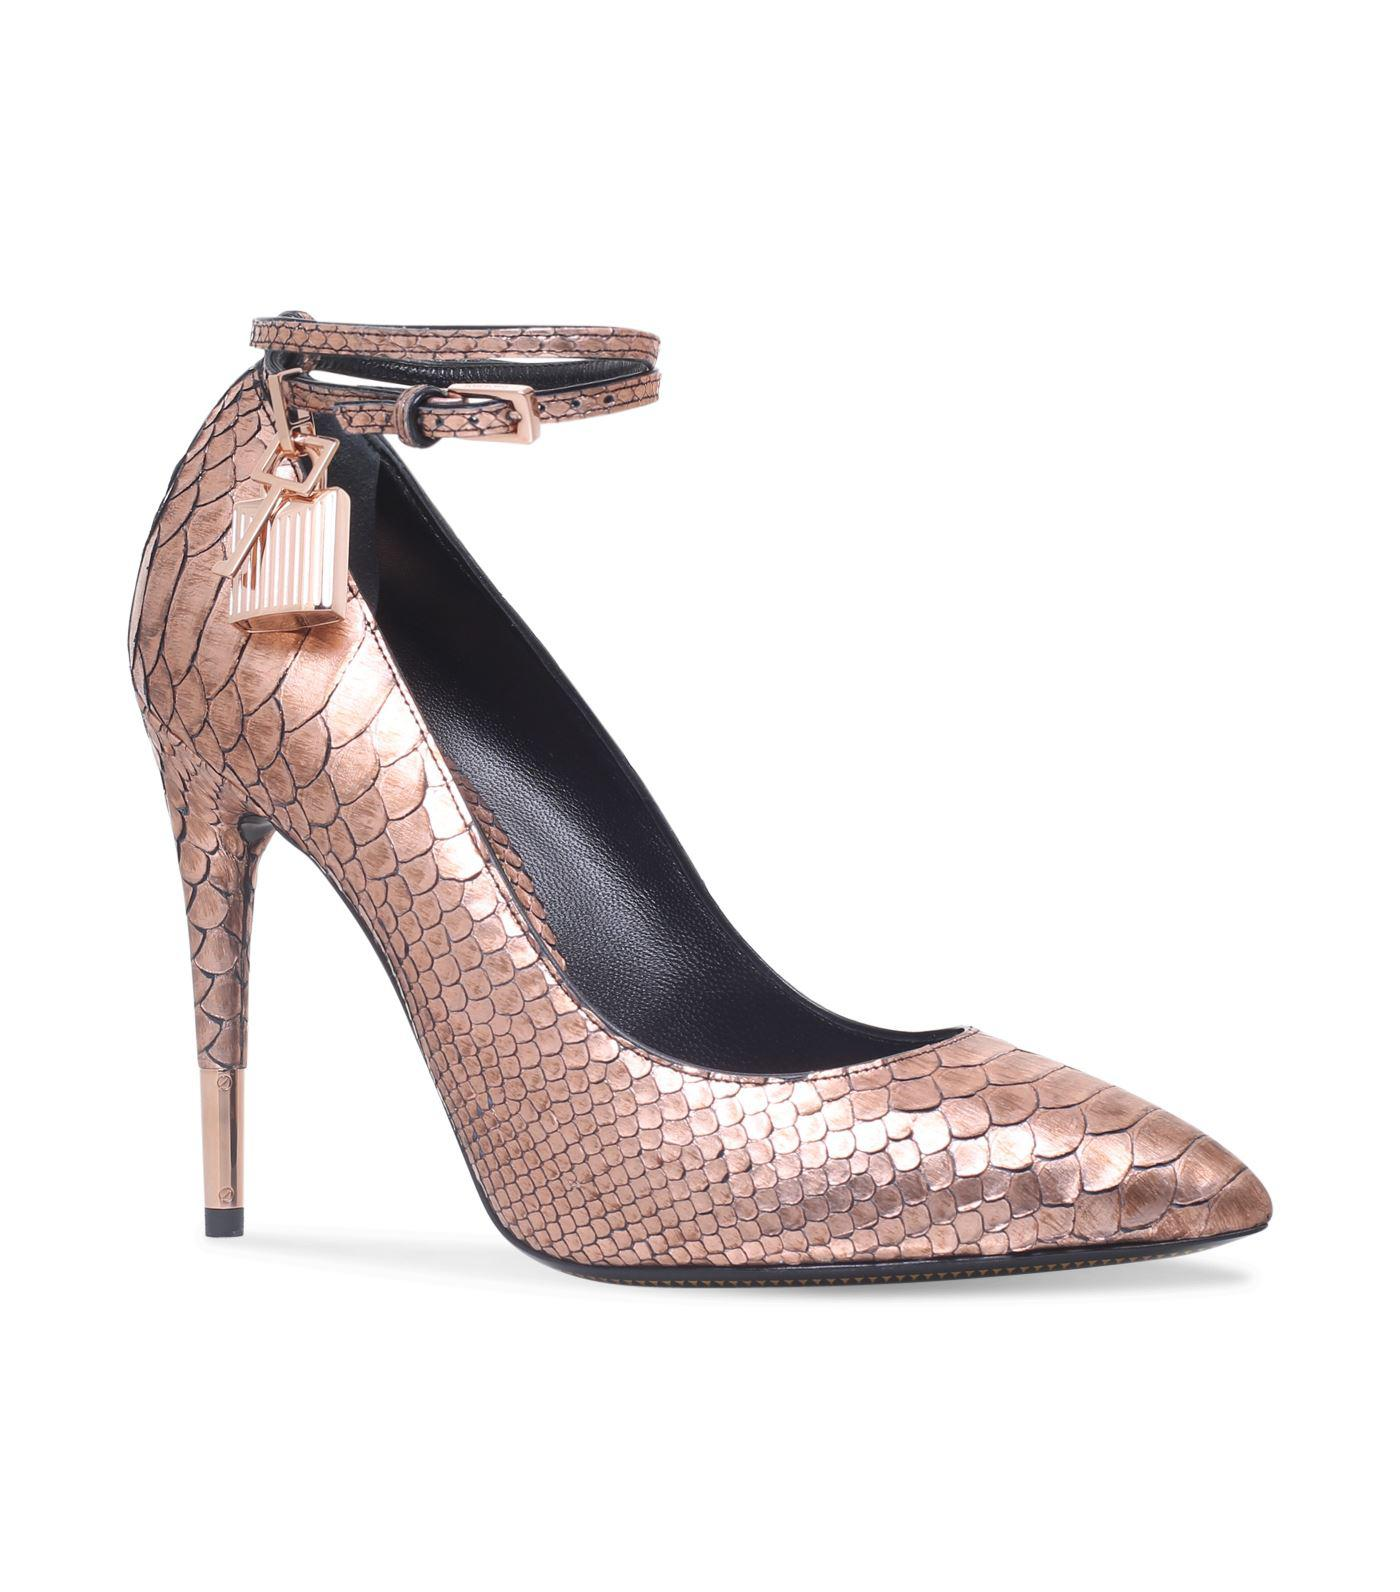 sale official site Tom Ford Metallic Snakeskin Pumps clearance huge surprise explore for sale outlet comfortable KKEQqbJ